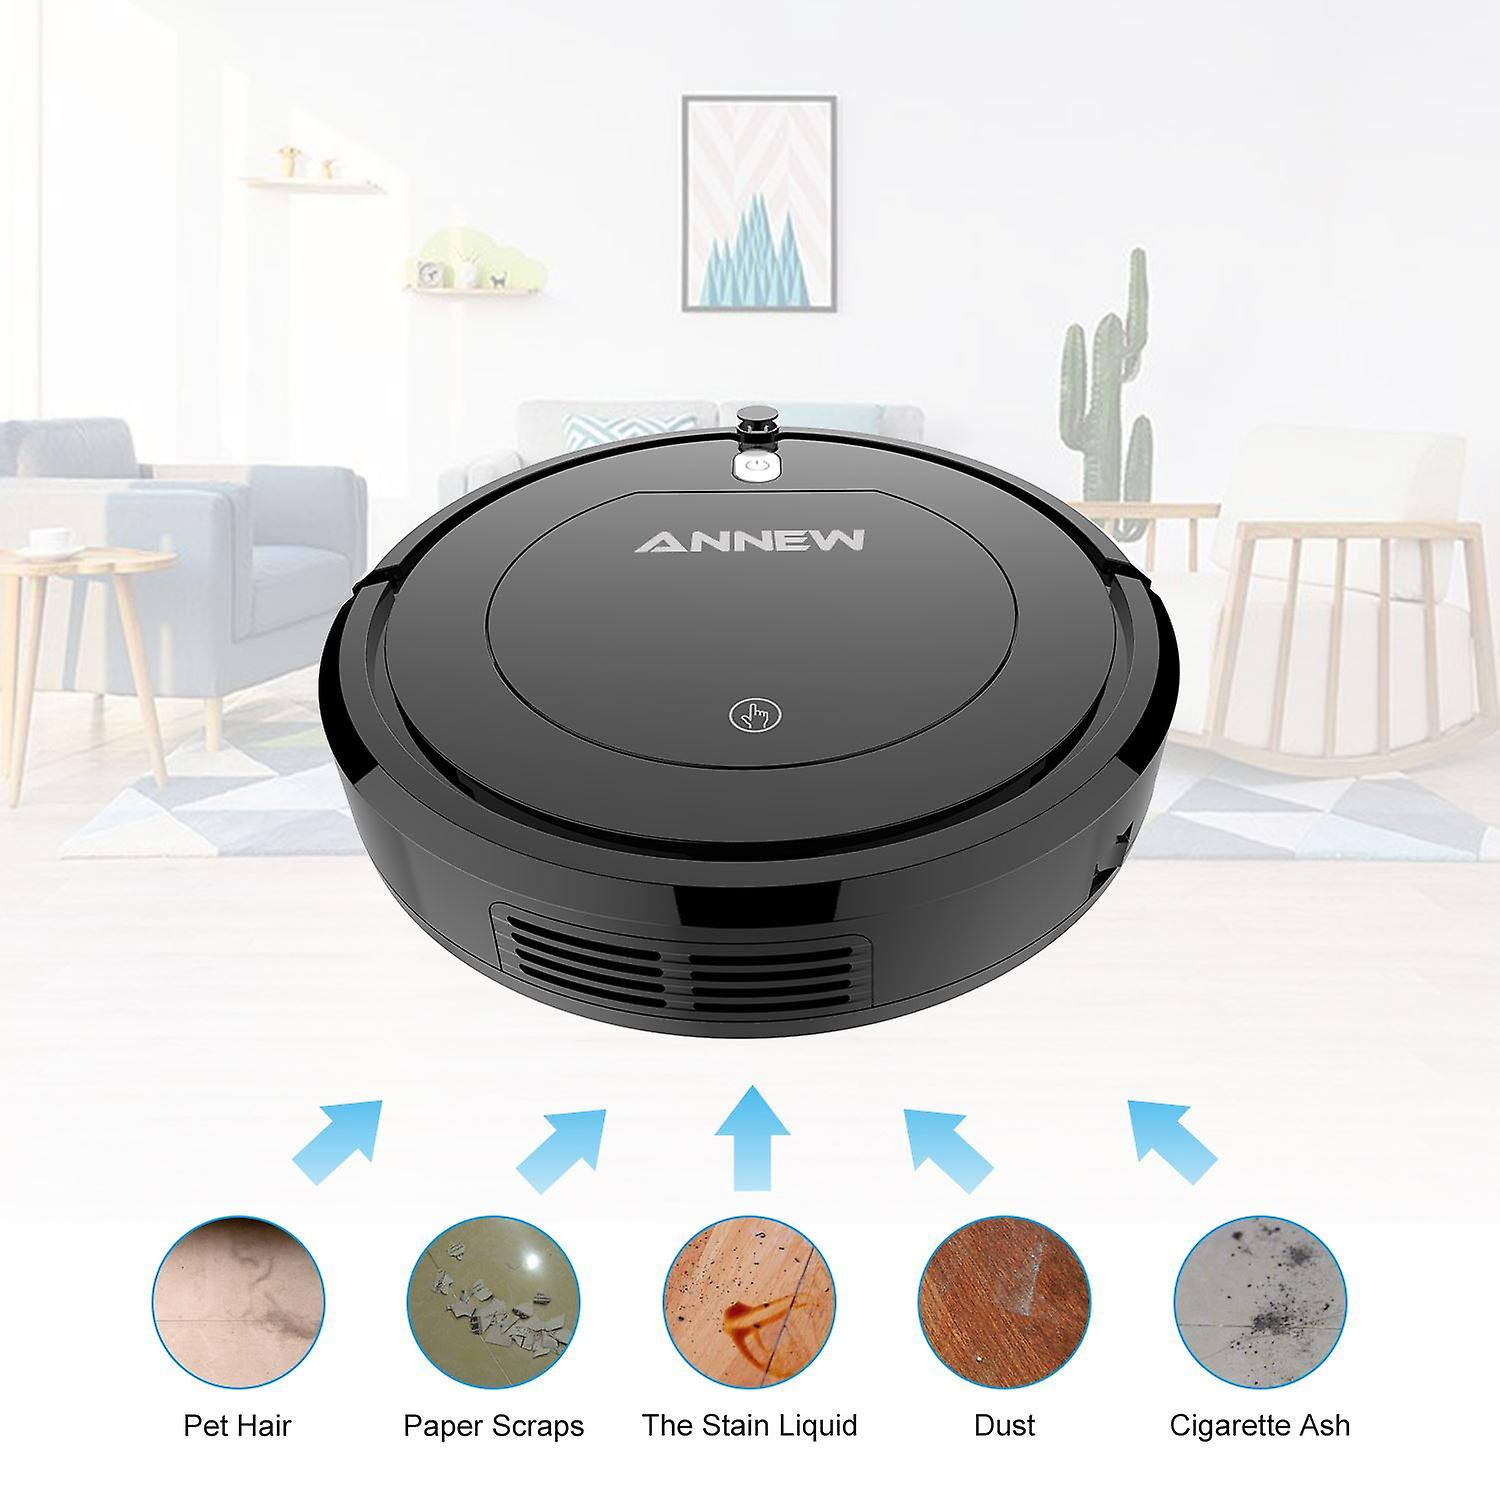 ANNEW Robot Vacuum Cleaner-Smart Home Cleaner With Strong Suction,3 Cleaning Modes,Super Quiet.Remote Control.HEPA Filter-Good for Pet Hair, Carpets, Hard Floors